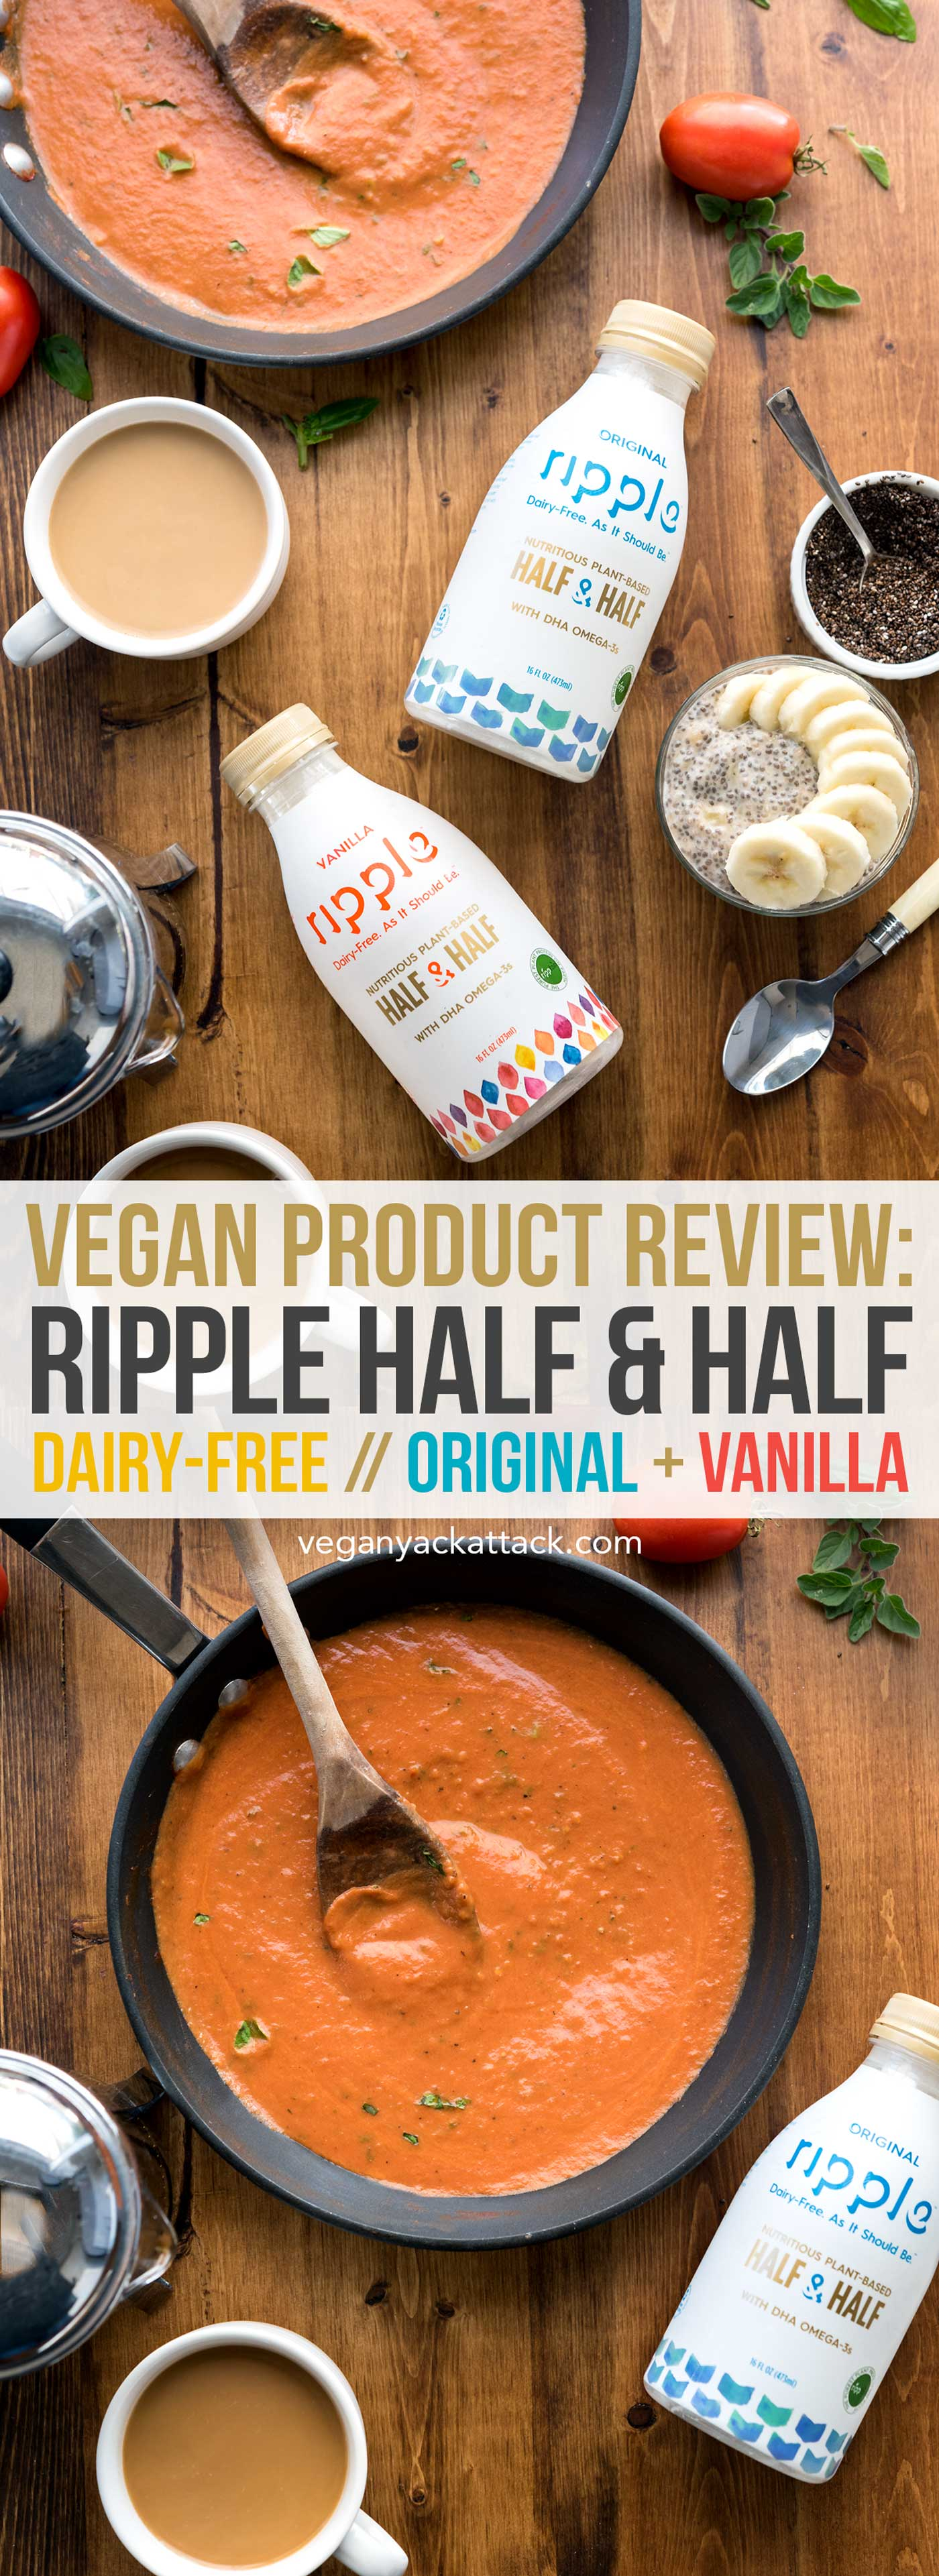 New Vegan Product Review: Ripple Half & Half! Silky smooth, ultra creamy, and versatile. Allergy-friendly, Nut-free #RippleFoods #DairyFreedom